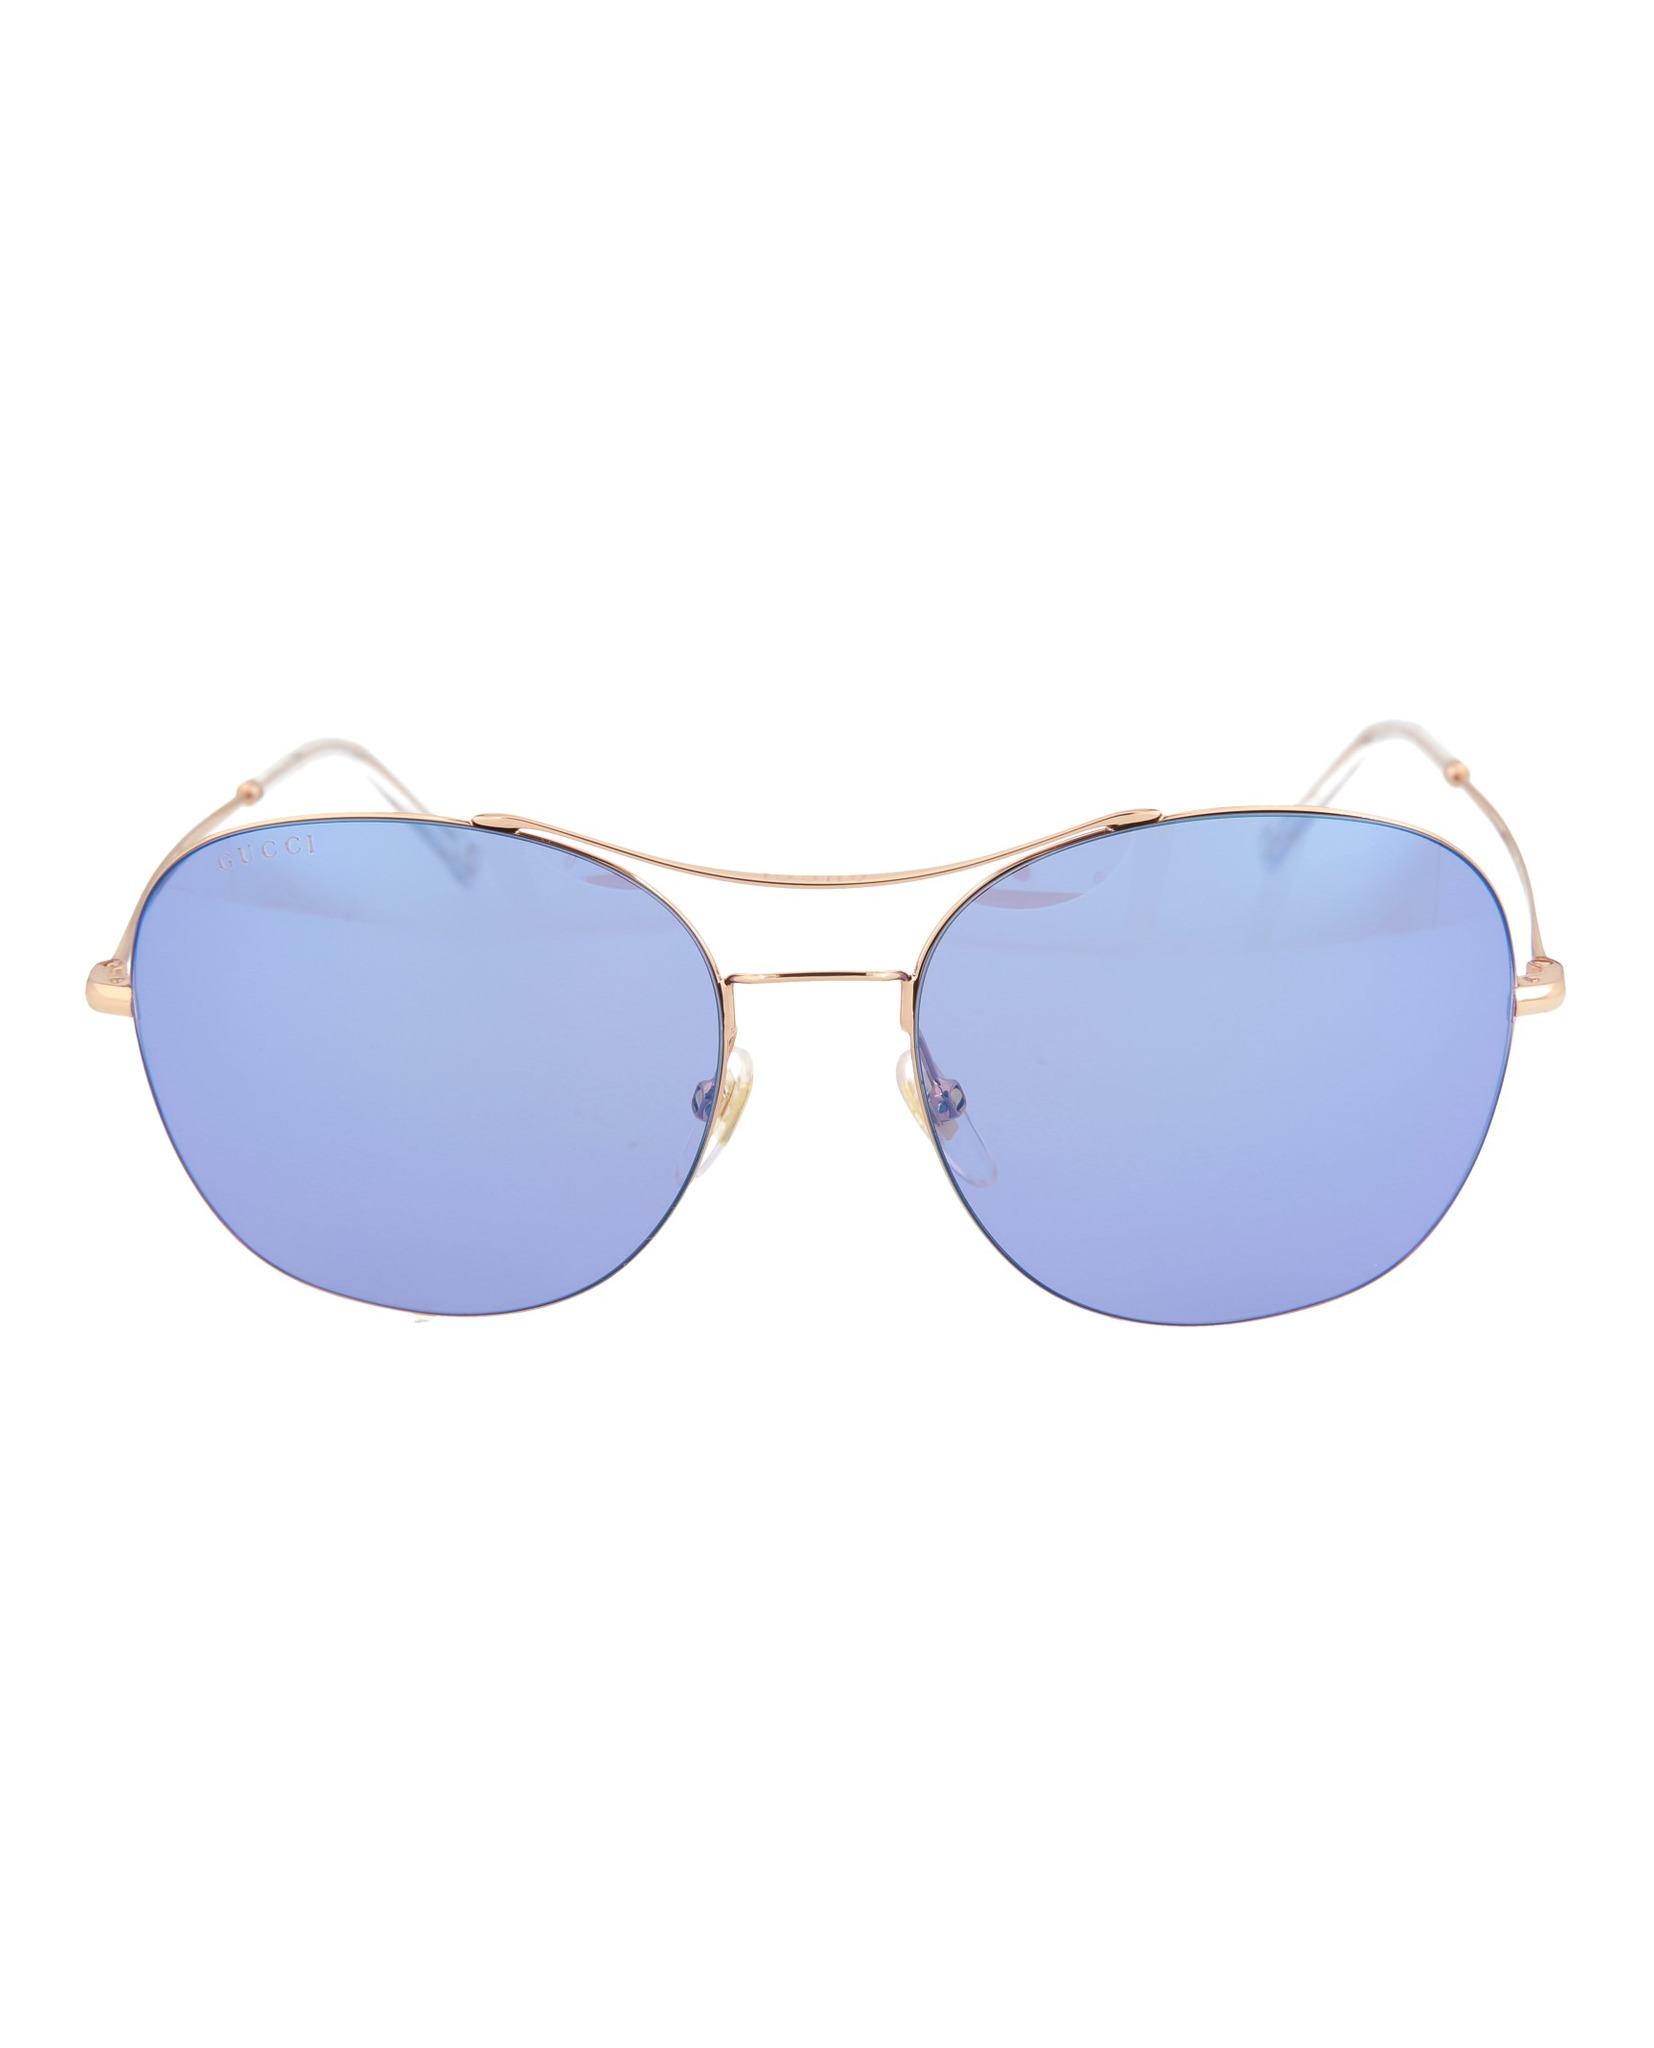 c1fa0a4492 Details about Gucci Womens Aviator Sunglasses GG0501S-30006501-005